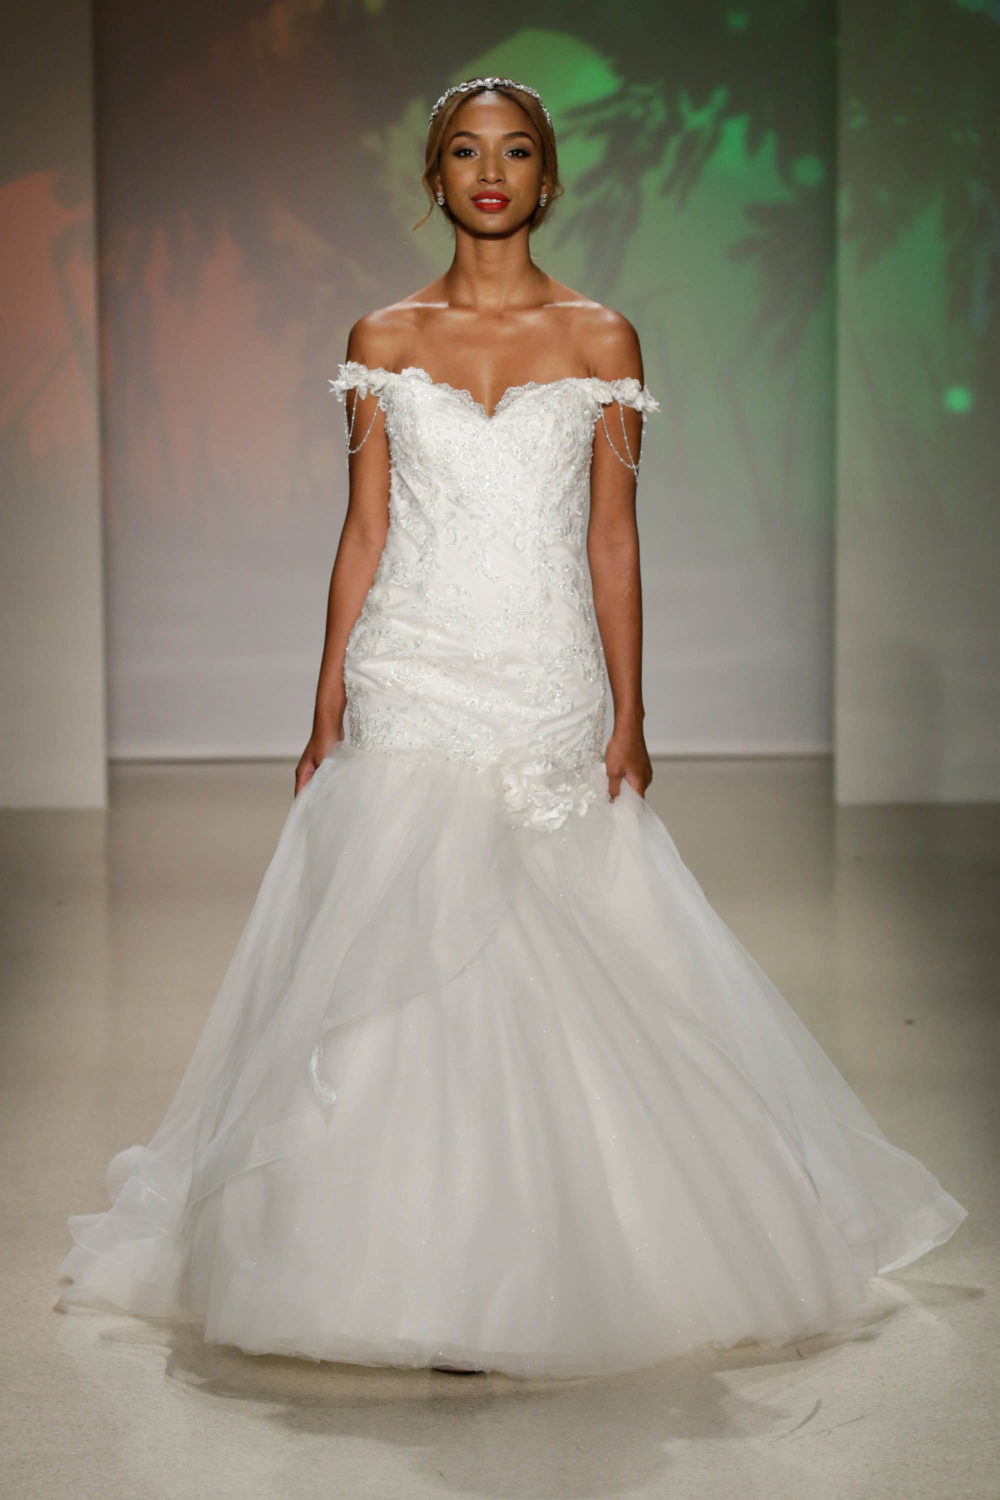 Tiana Princess And The Frog Wedding Dress Alfred Angelo Spring 2017 Bridal Show With Disney Weddings